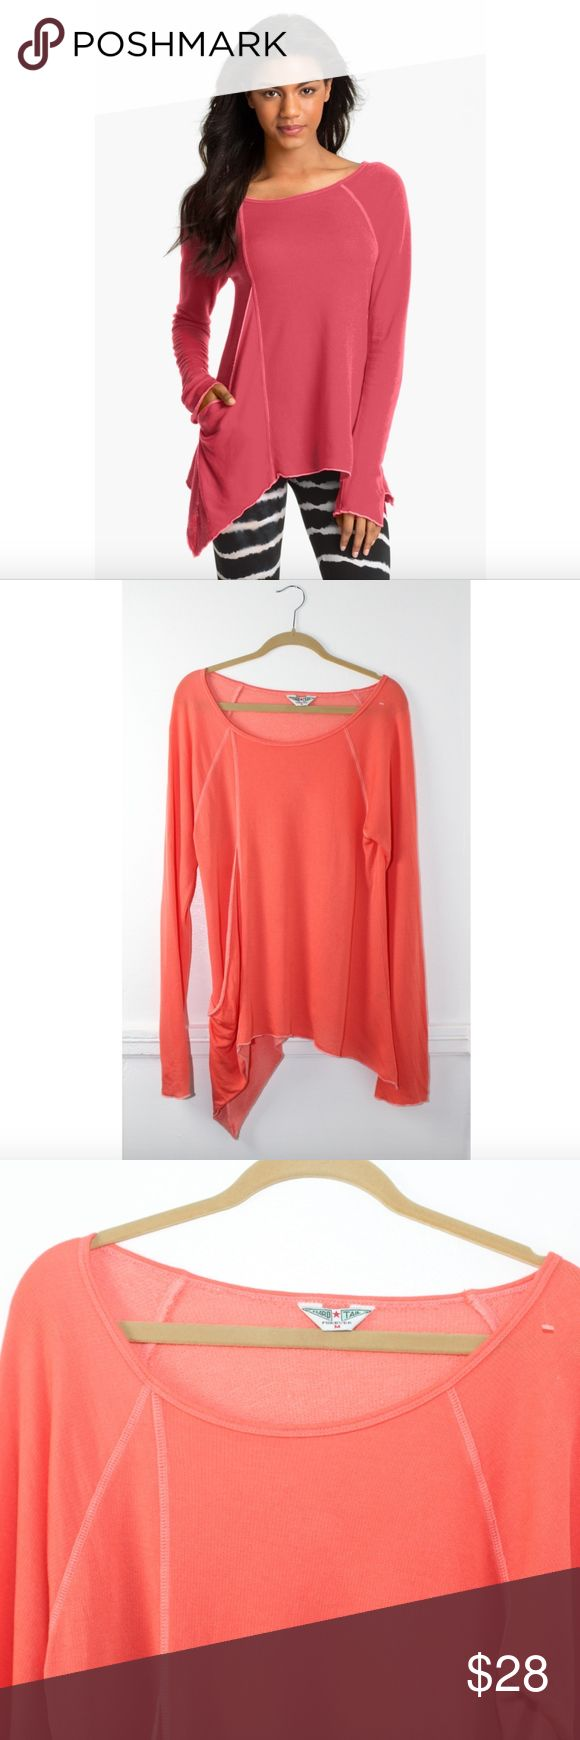 """Hard Tail 'Frolic' Coral Asymmetric Top Hard Tail 'Frolic' Coral Asymmetric Top, Size Medium, Coral/orange color, Long sleeve, An angled inset panel creates unexpected draping down one side of a buttery-soft knit top designed with a single slouchy pocket. Thin lightweight sweatshirt type material, Exposed seaming, Approx. length from shoulder: 24 1/2"""" to shortest point; 30 1/2"""" to longest point, 76% Tencel lyocell, 24% cotton, Machine or hand wash cold, tumble dry low, Pre owned great…"""